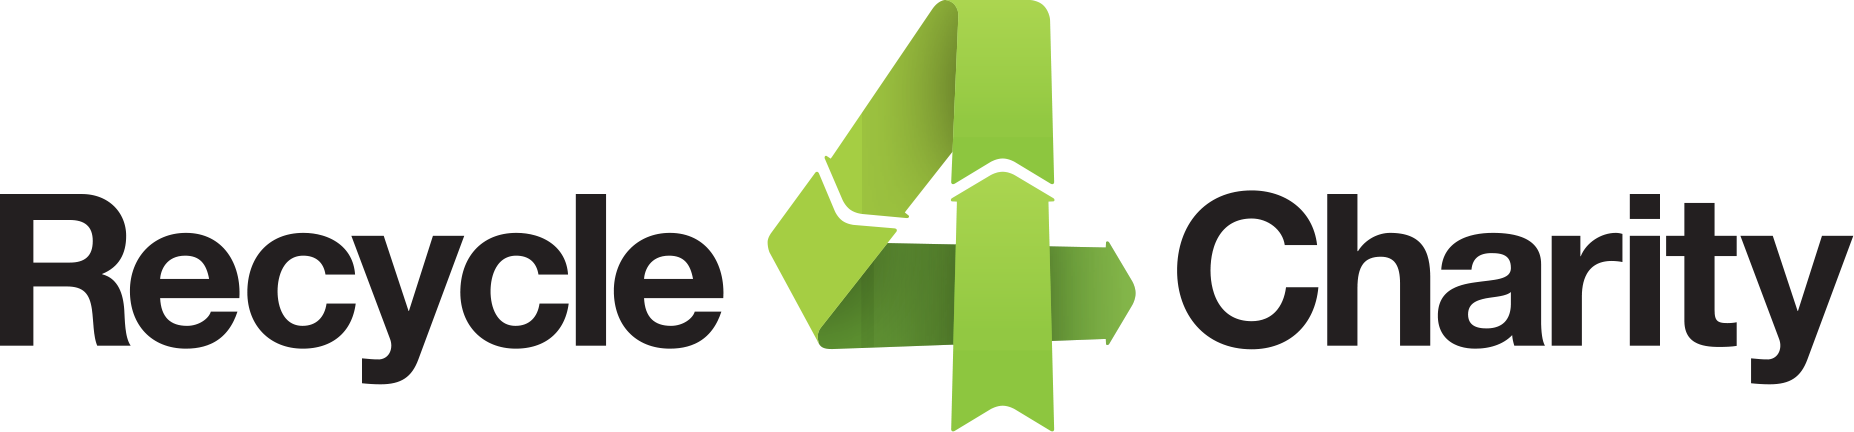 recycle 4 charity 2